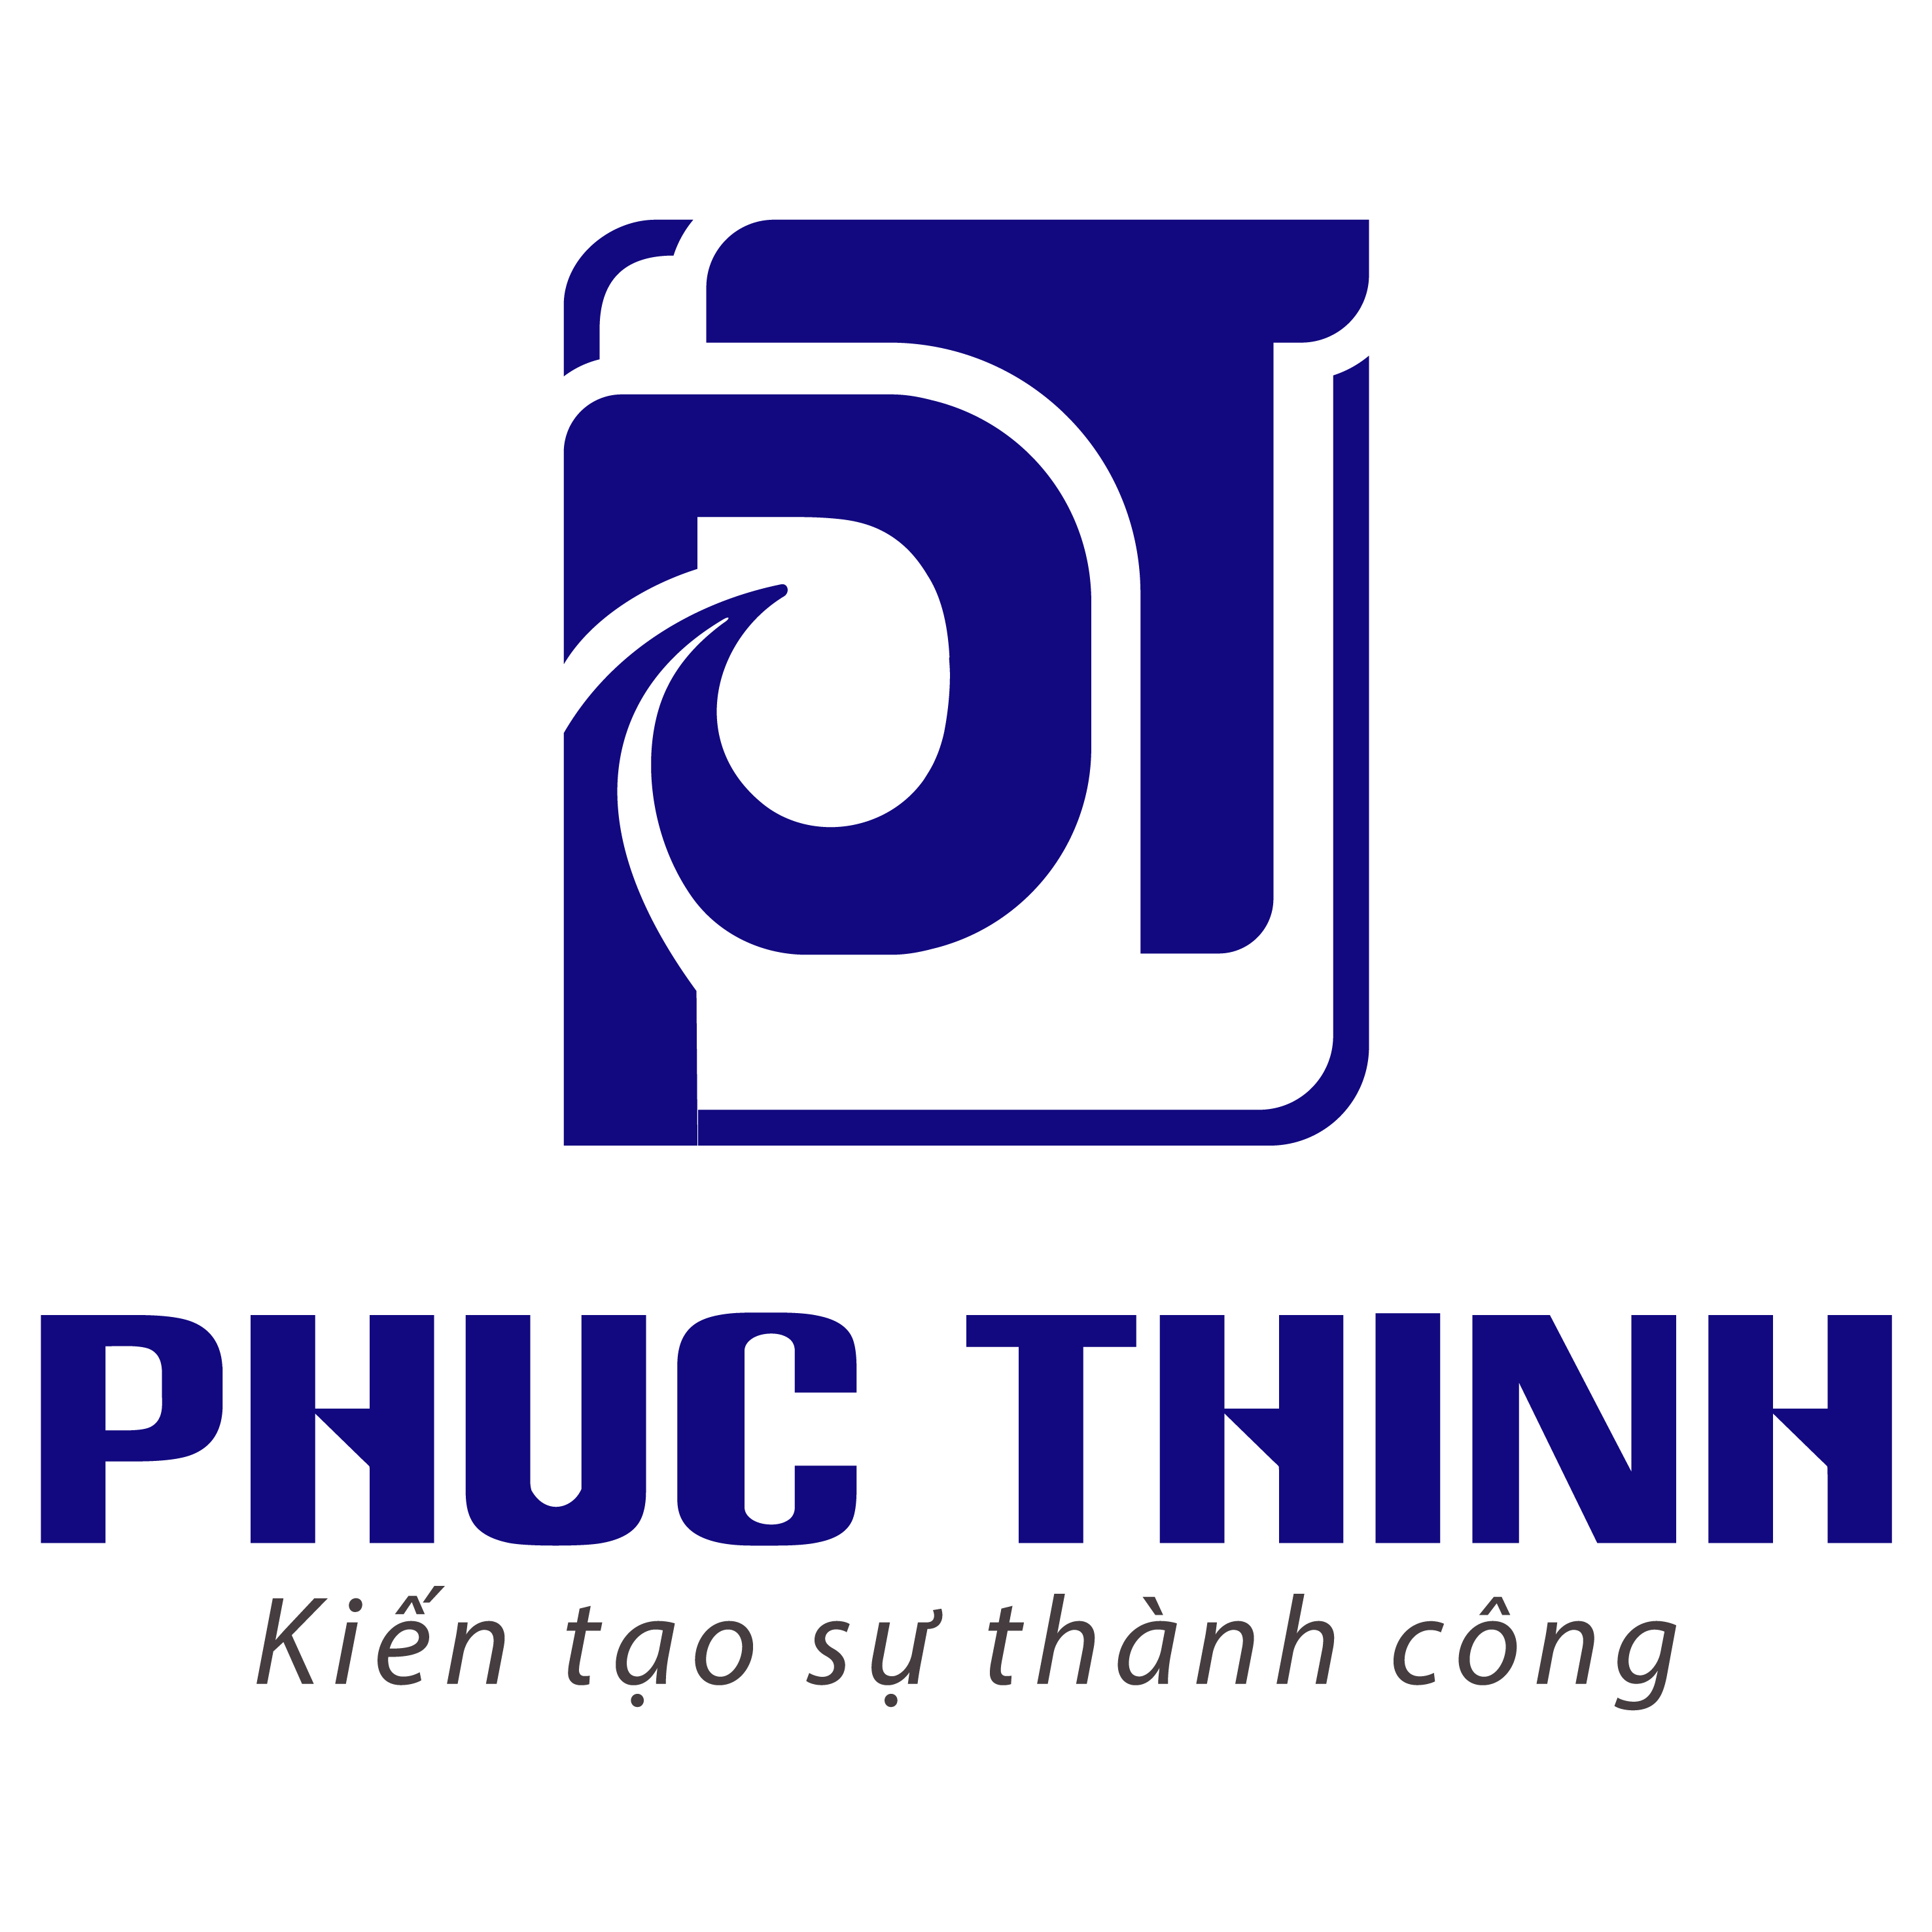 cty-cpdt-bds-phuc-thinh